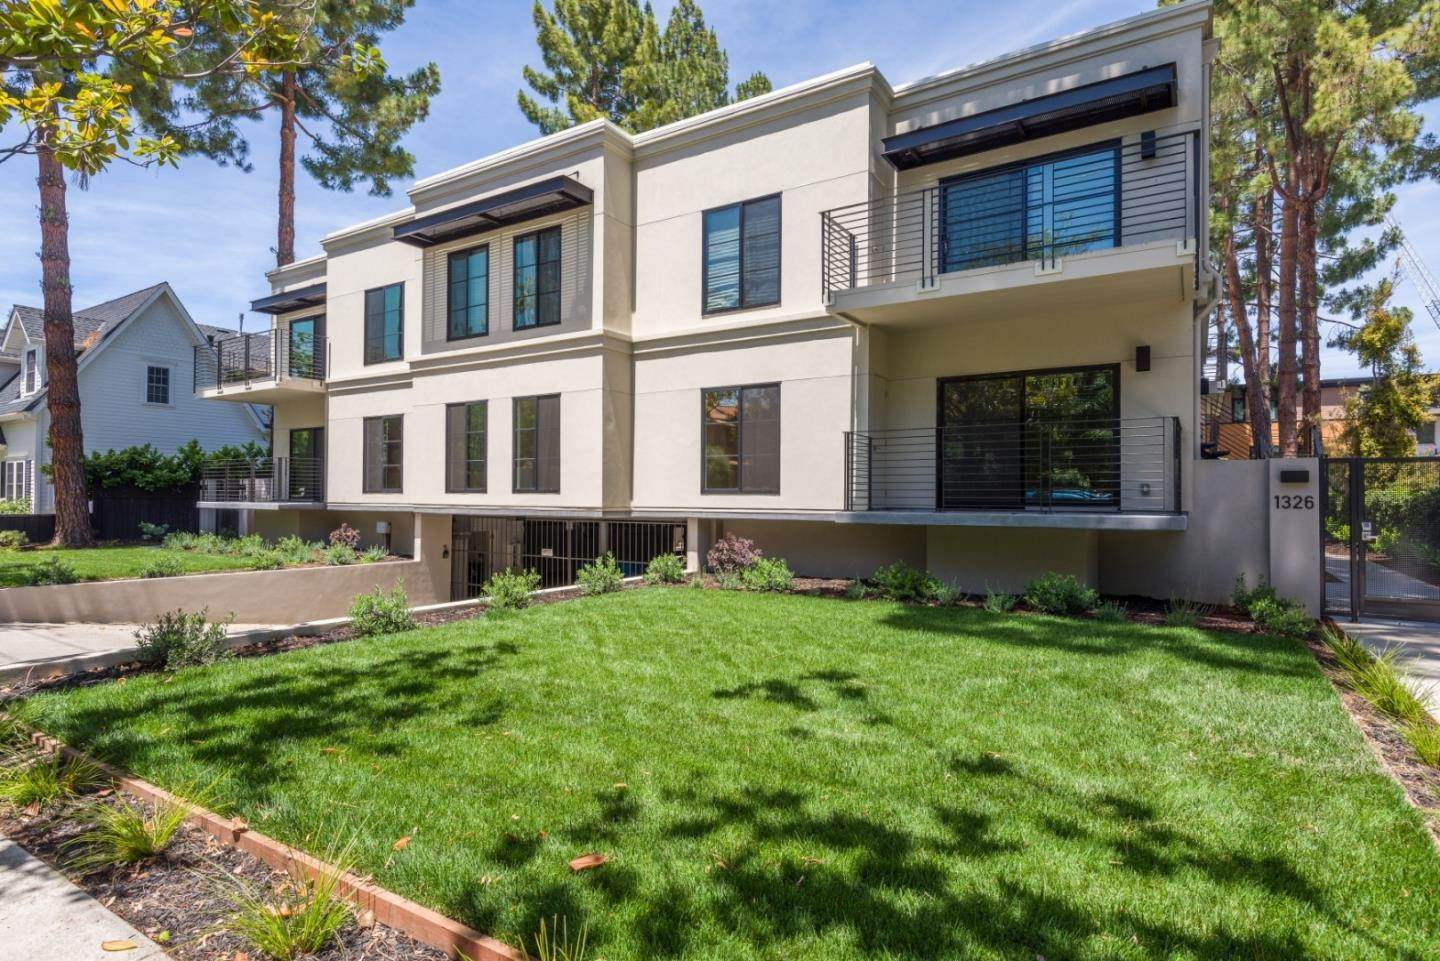 Condominiums for Sale at 1326 Hoover Street Menlo Park, California 94025 United States